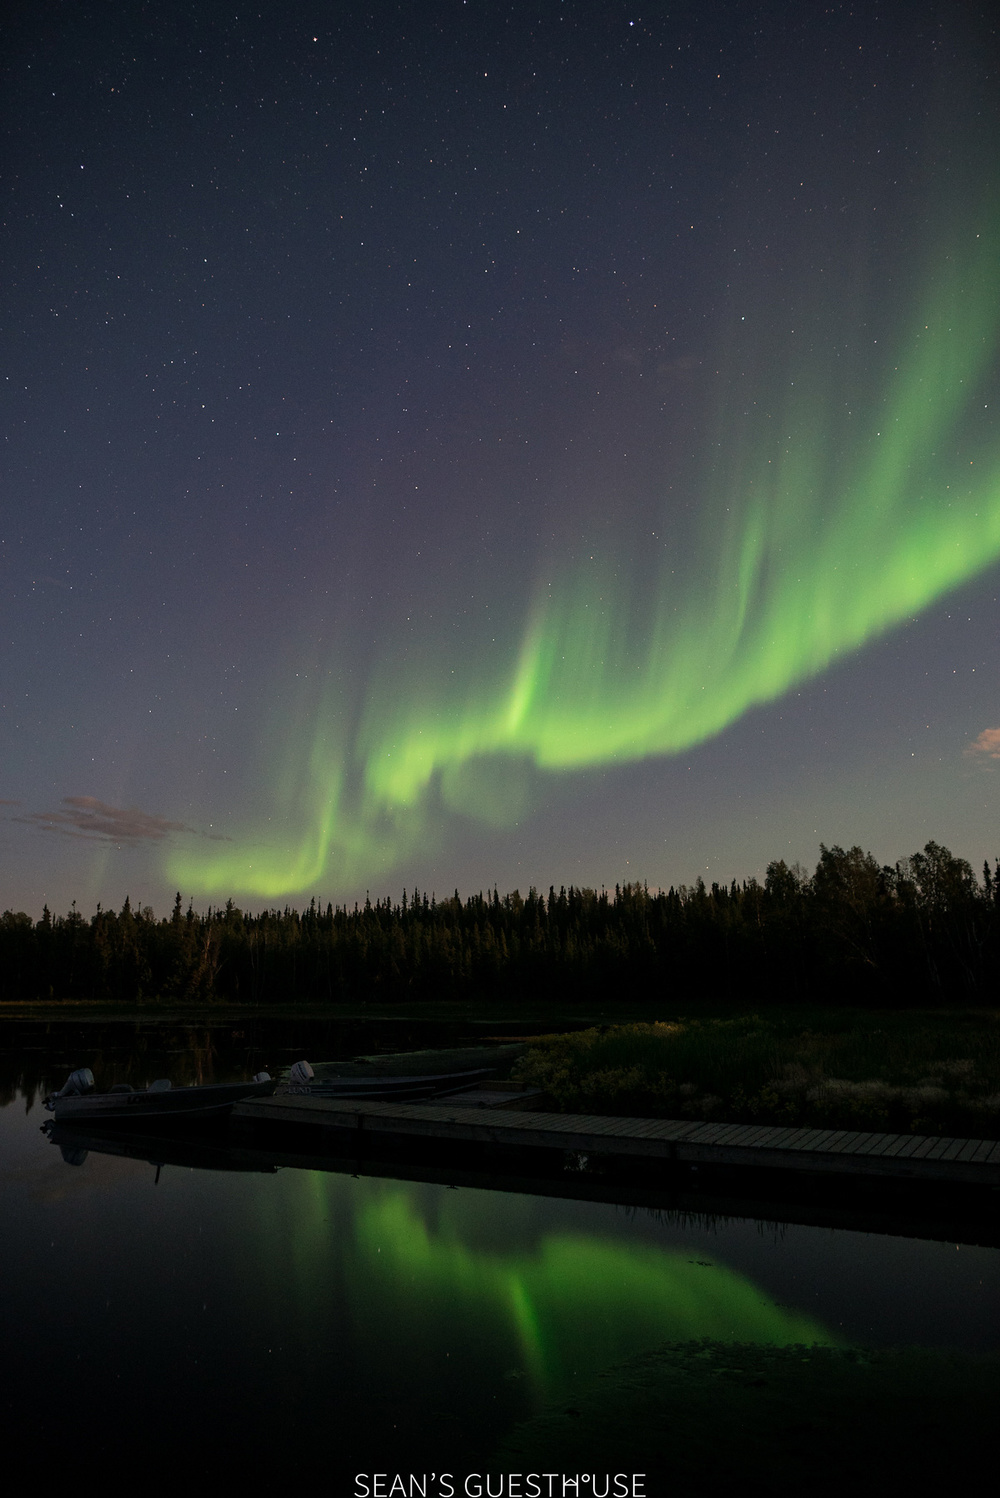 Sean's Guesthouse - Yellowknife Northern Lights Accommodation & Tours - 9.jpg